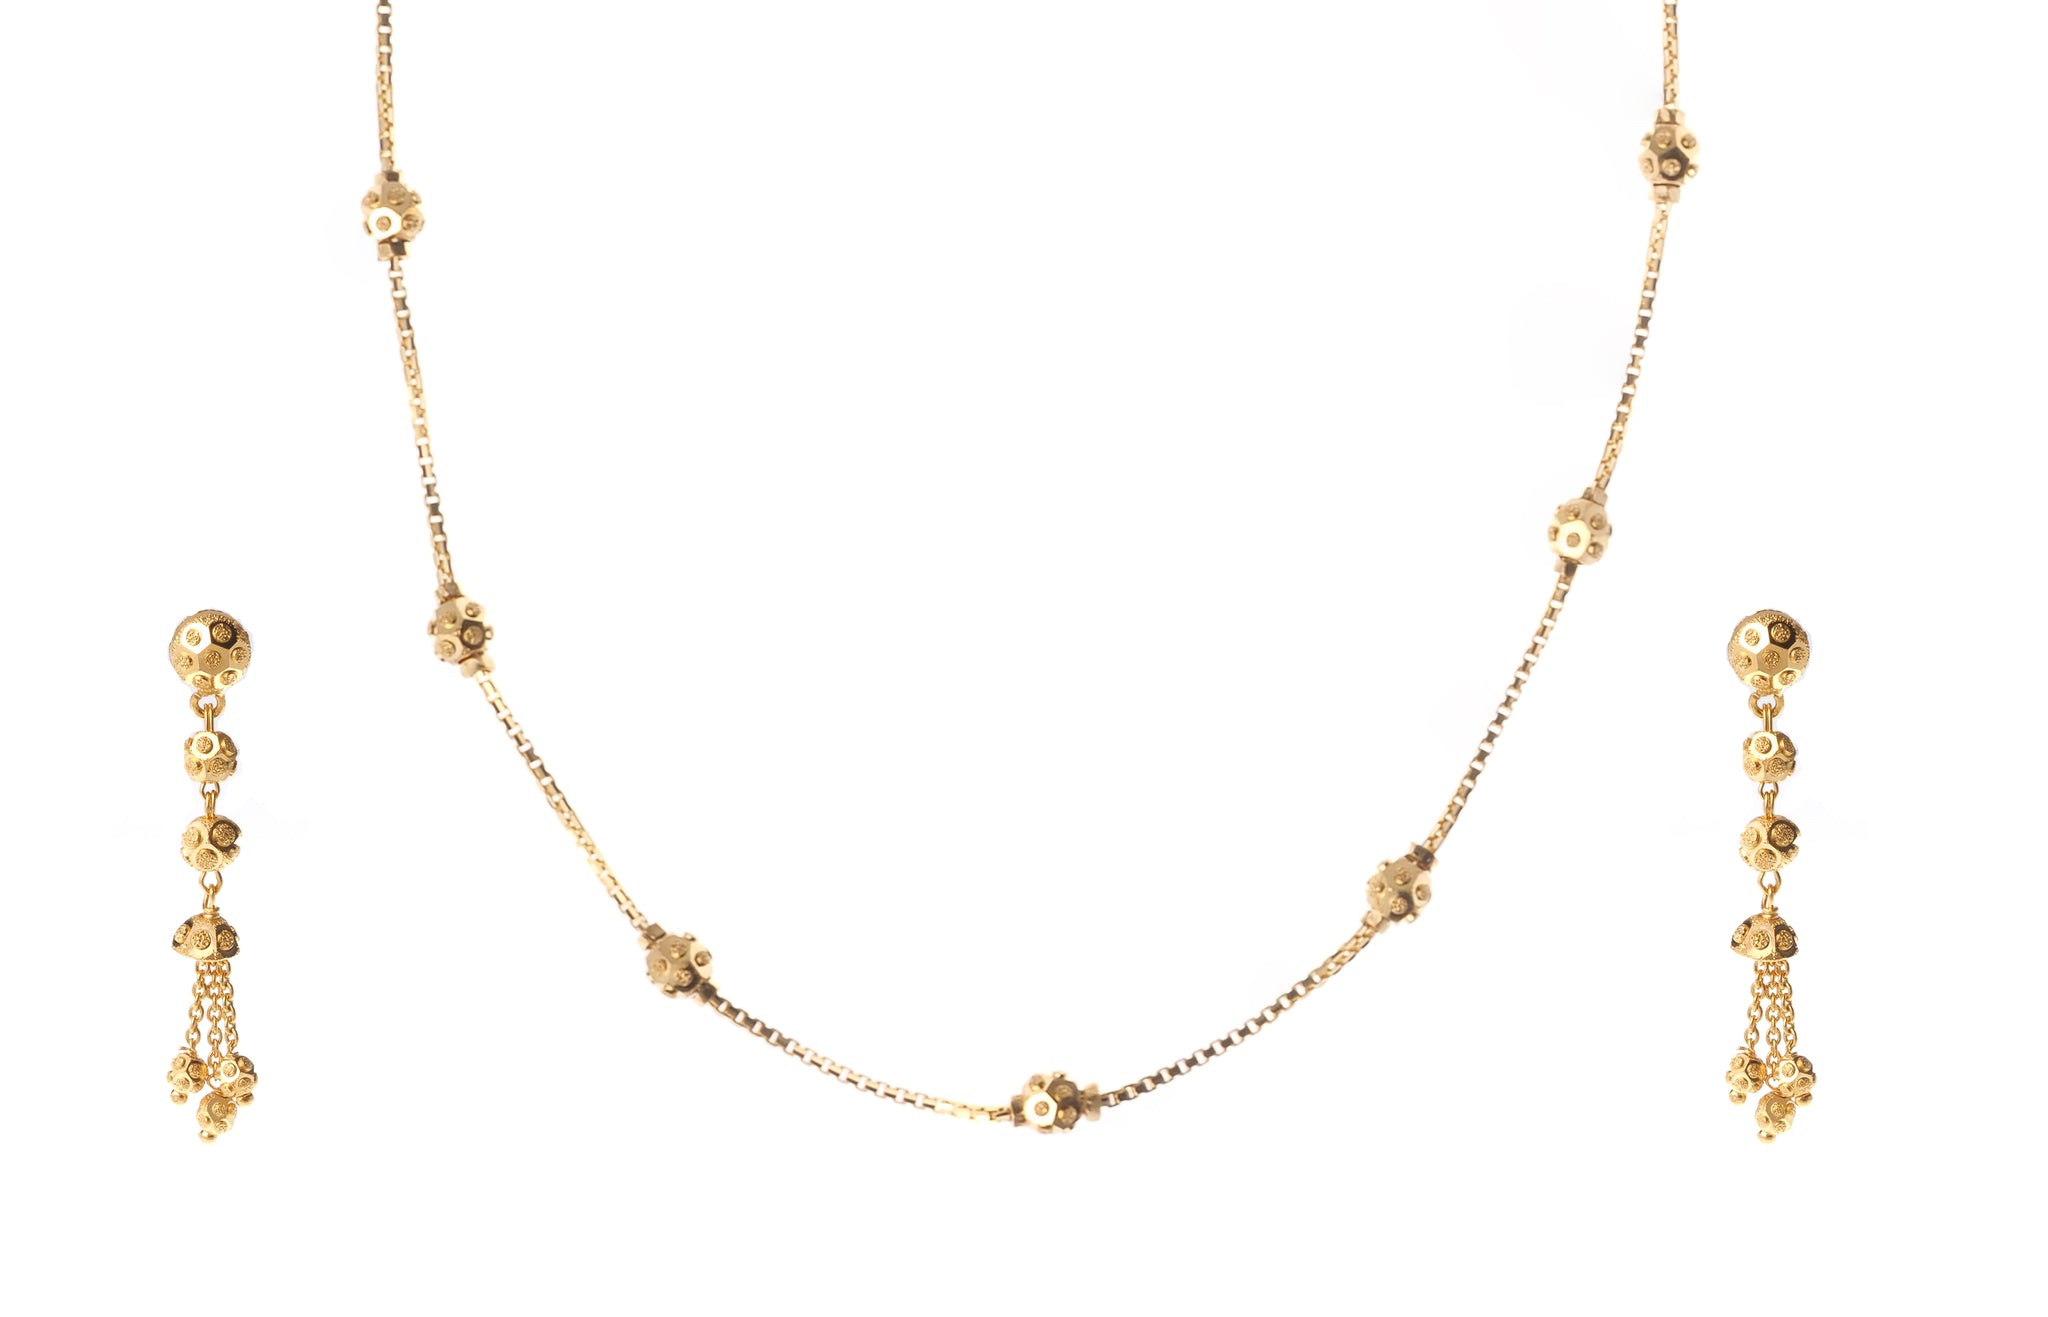 22ct Gold Necklace and Earrings Set (N&E-7175)